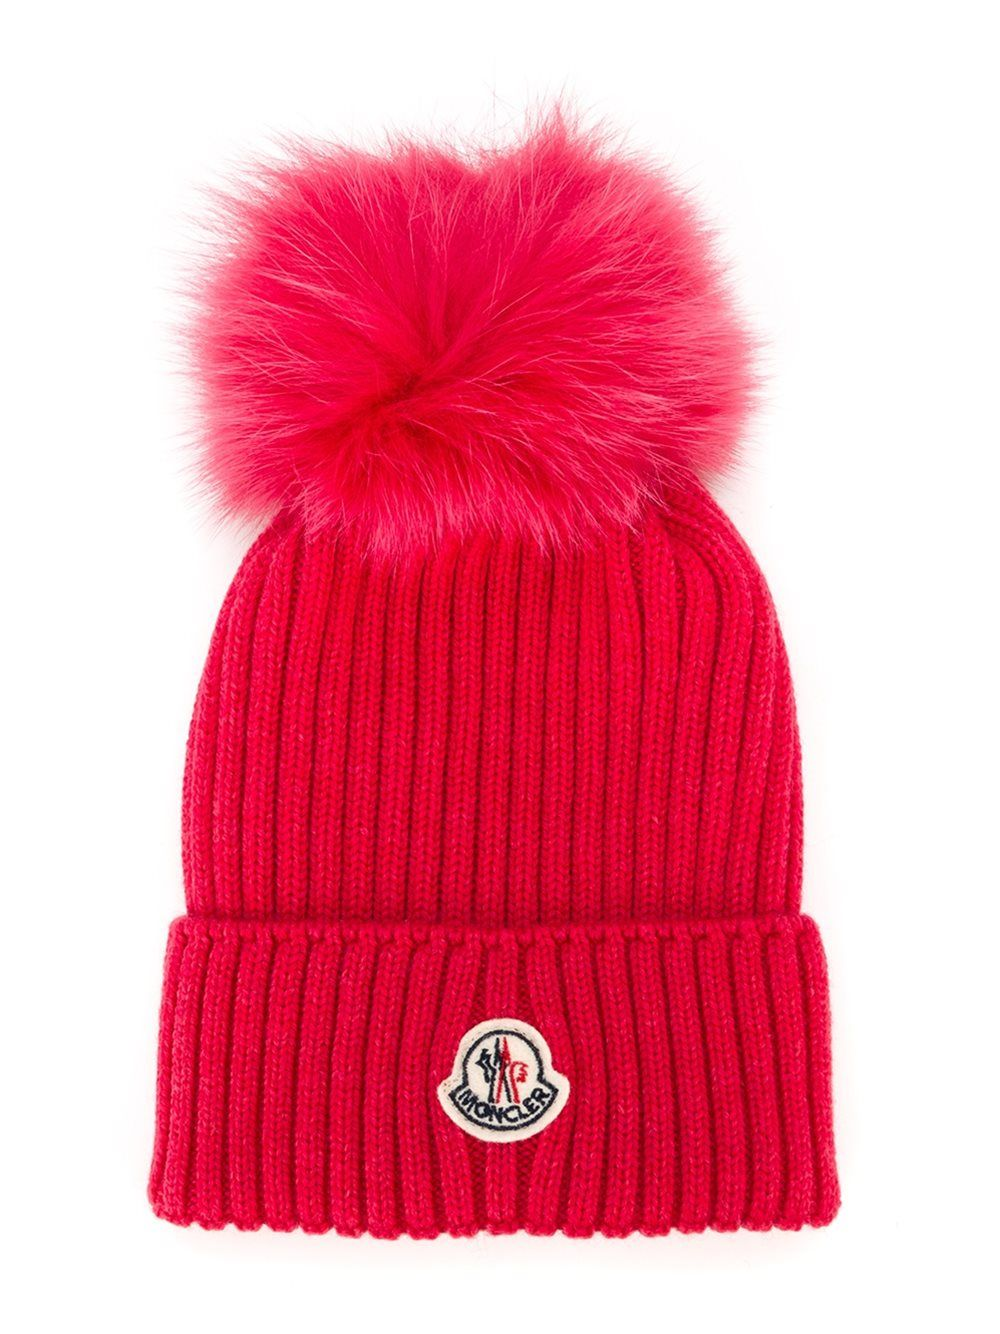 moncler  kids  beanie  fur  red  pompom  hats  new www.jofre.eu ... 597d1db8ca4